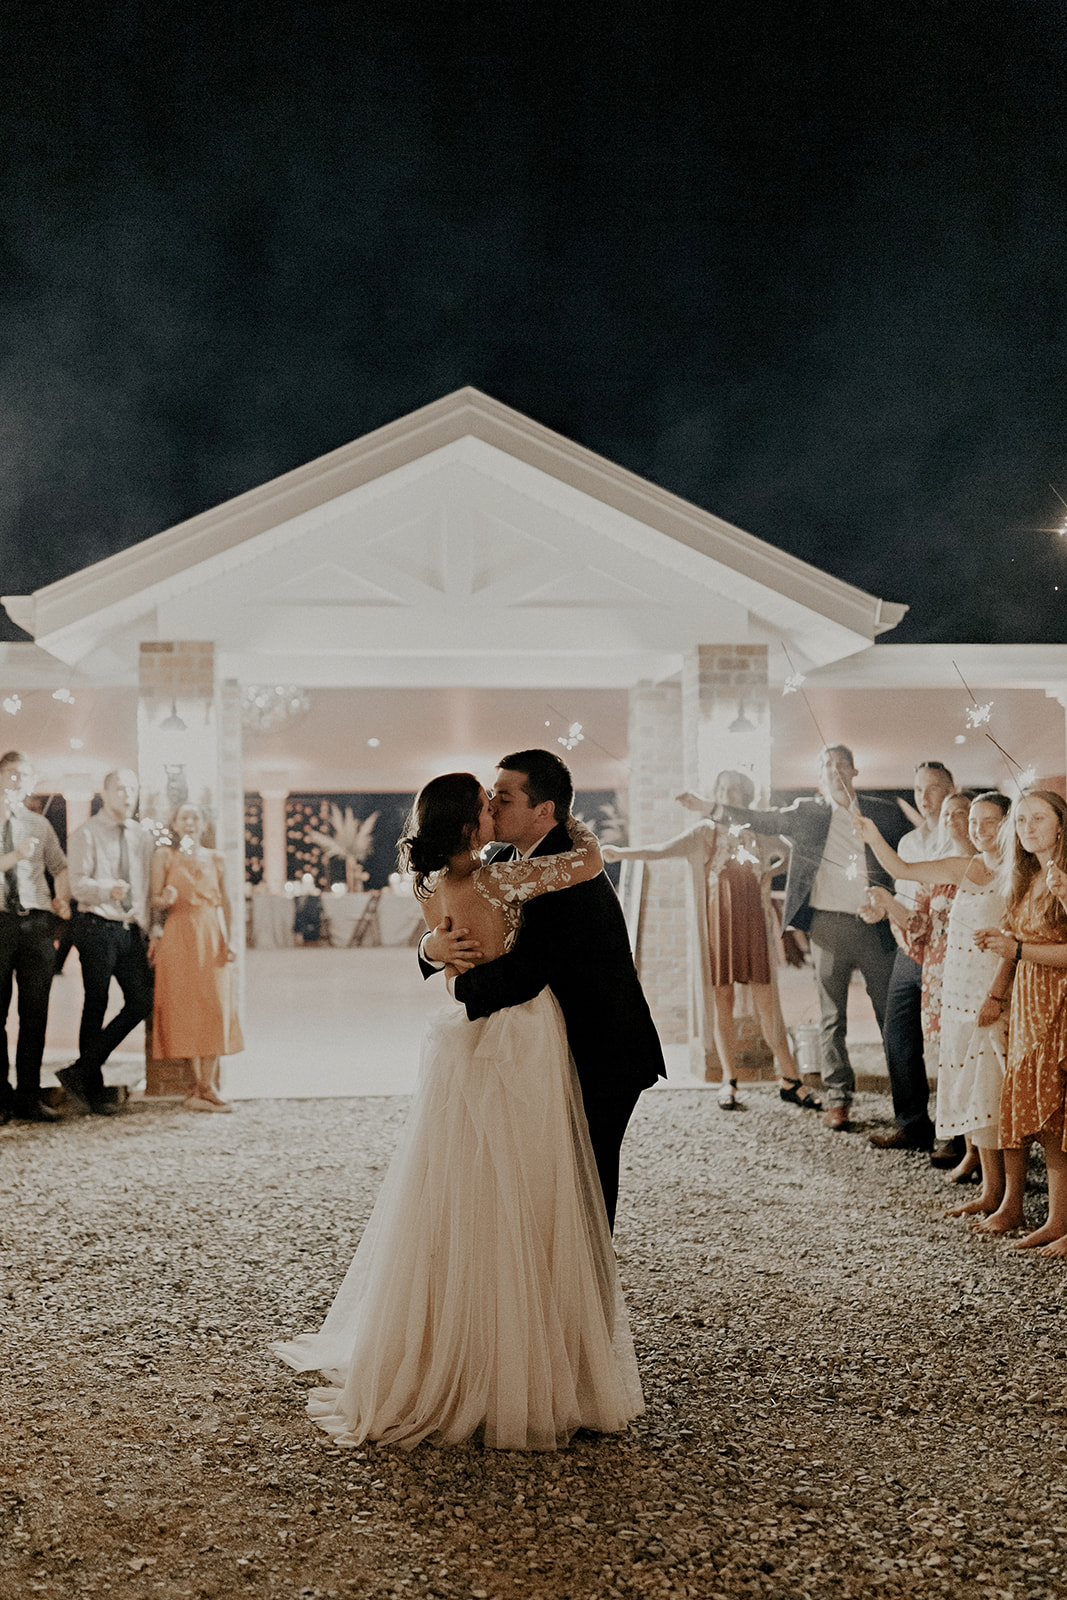 Our Favorite Send Offs - A grand exit is a great way to bring your party to a close on a high note. And we have some cool couples who have gone out in style.